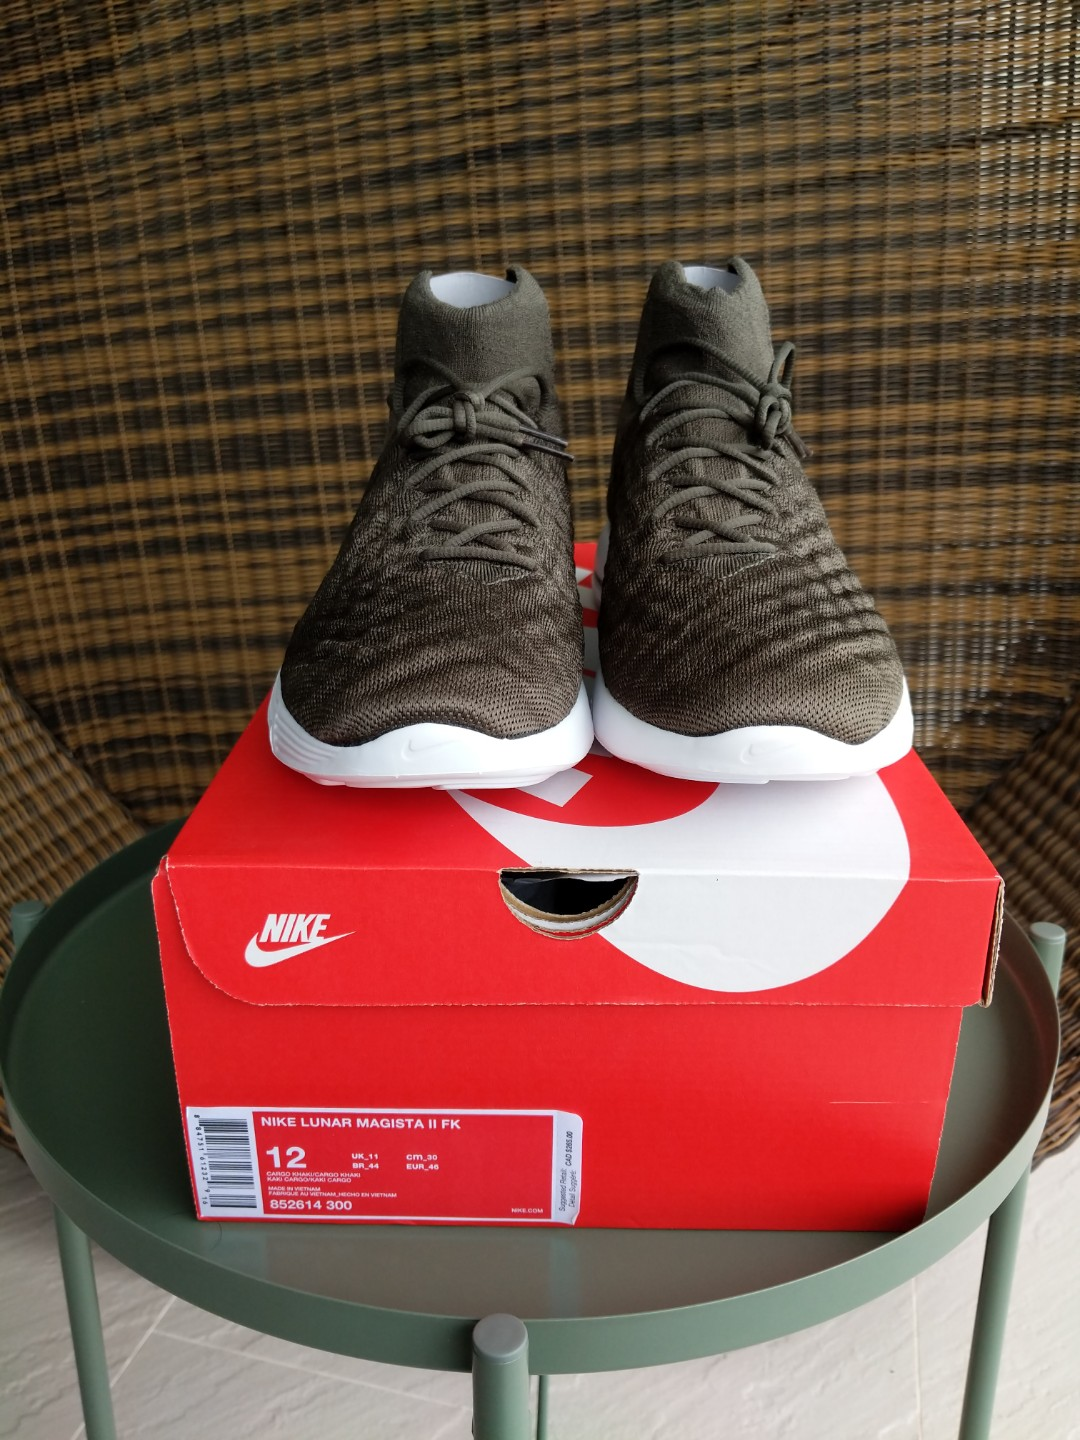 newest collection ef0ac a2f7f Nike lunar magista 2 flyknit, Men s Fashion, Footwear, Sneakers on Carousell